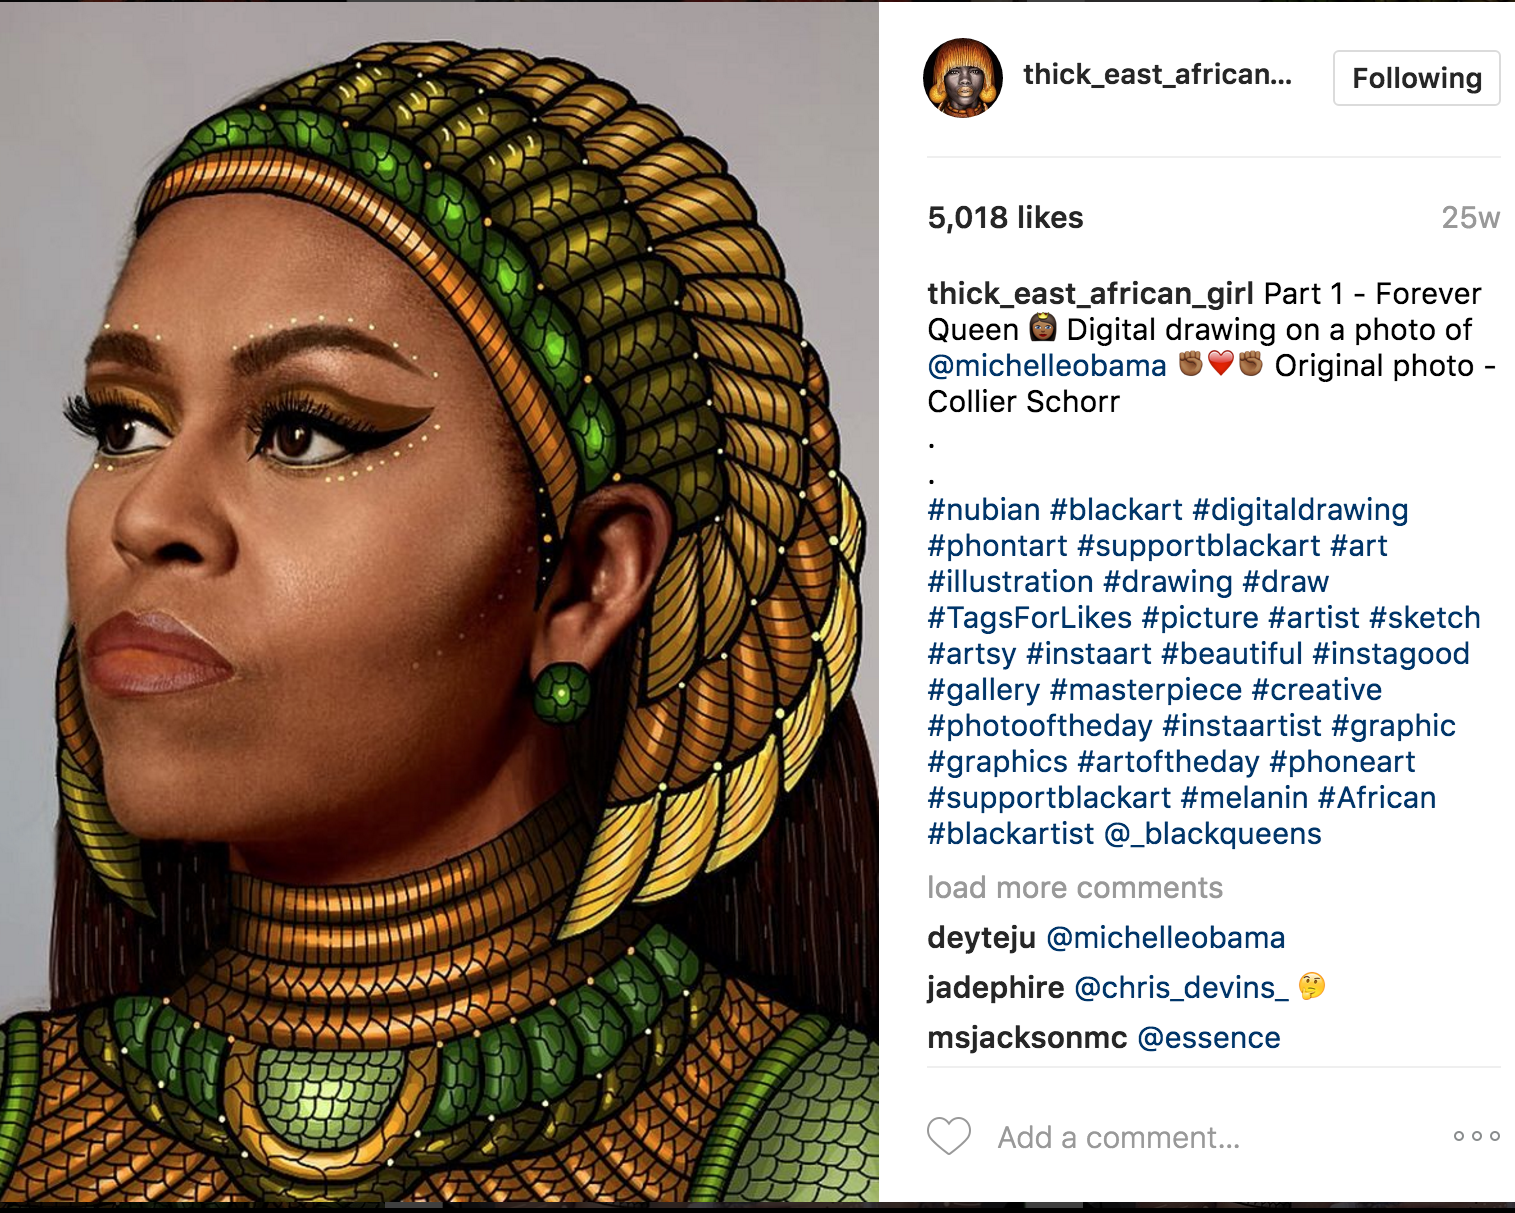 The Case of the Art Thief: Thoughts on Cultural Appropriation and Blackness